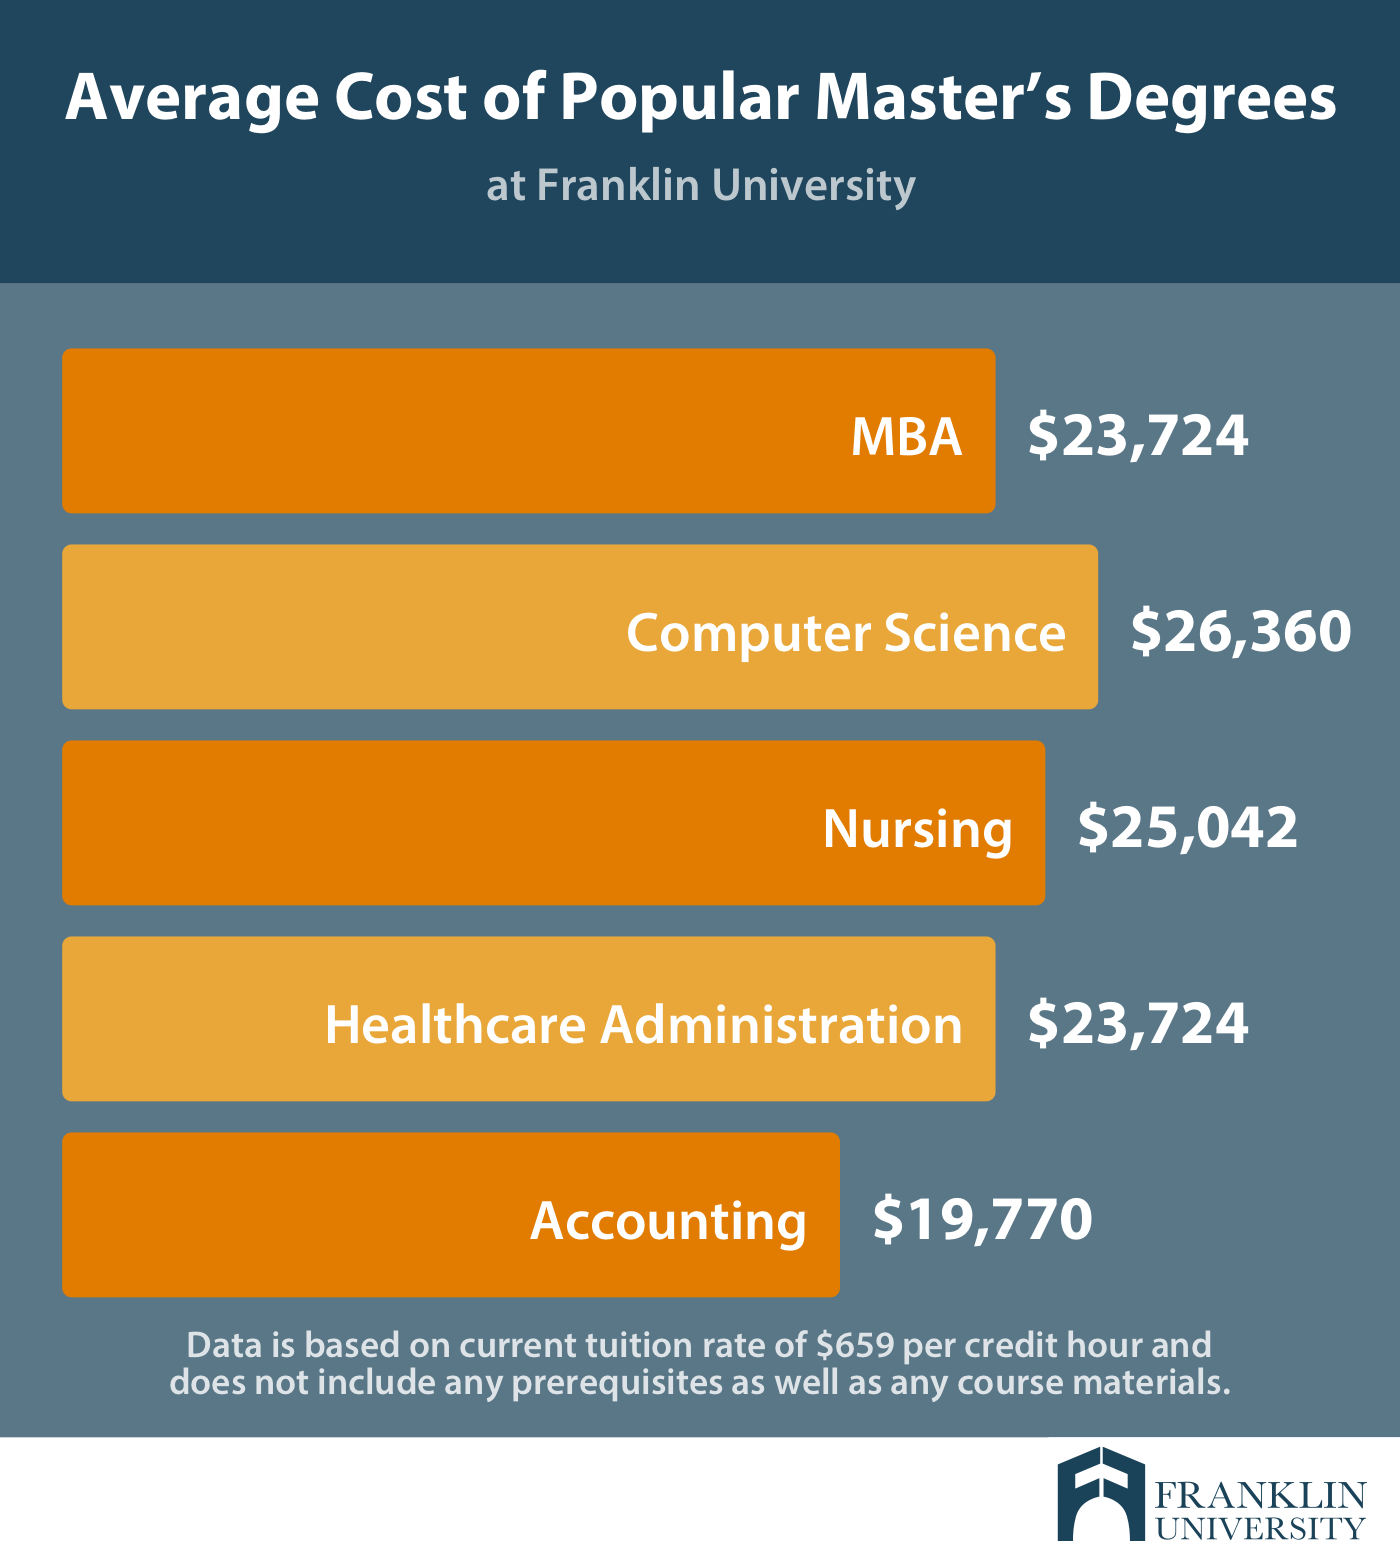 graphic describes the average cost of popular masters degrees